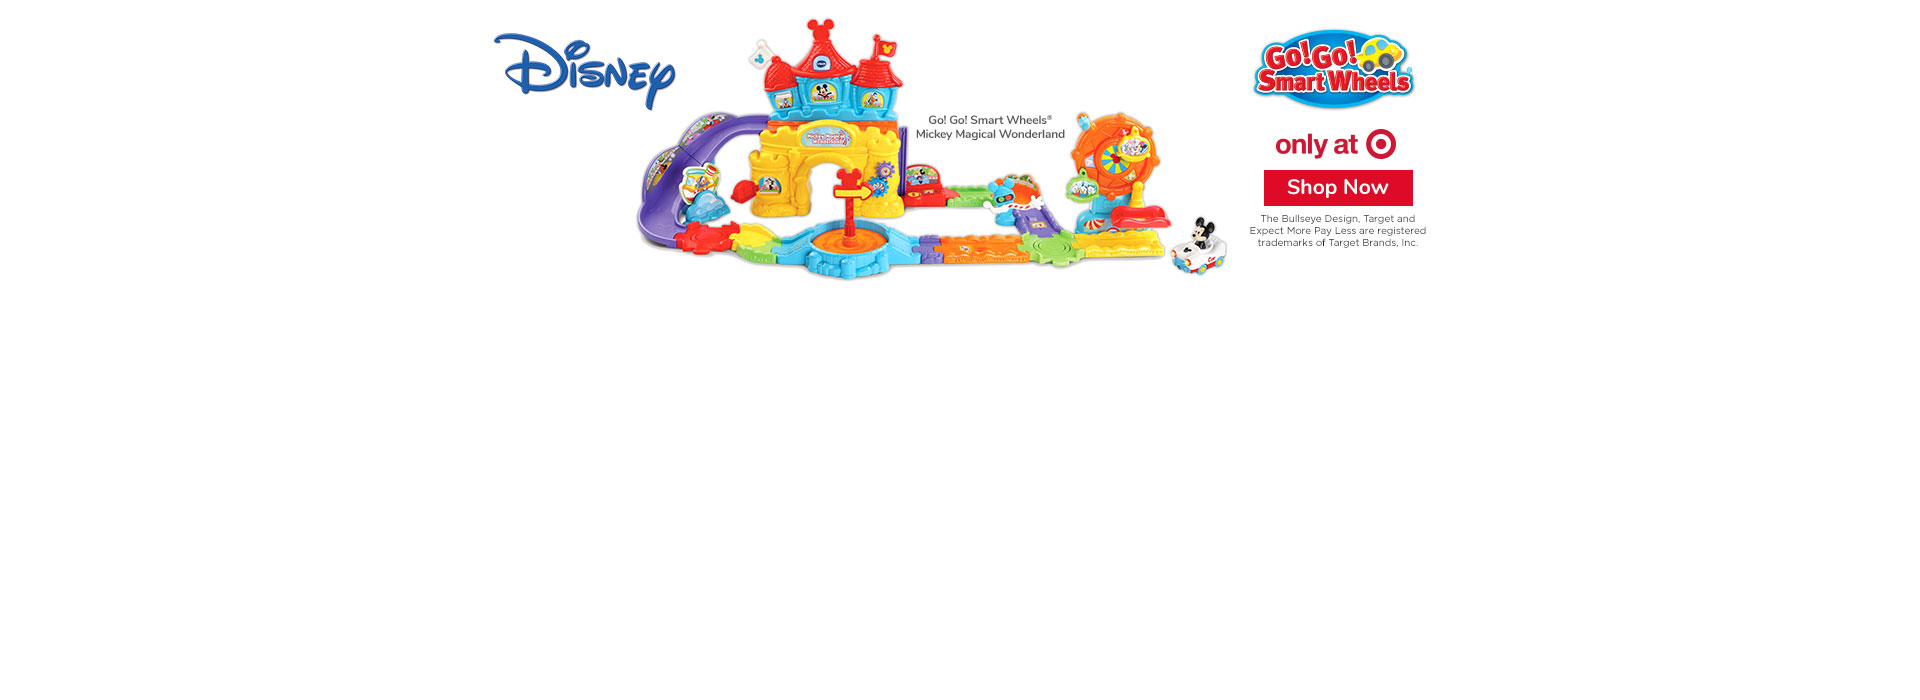 Go! Go! Smart Wheels Disney Mickey Magical Wonderland - Exclusively at Target